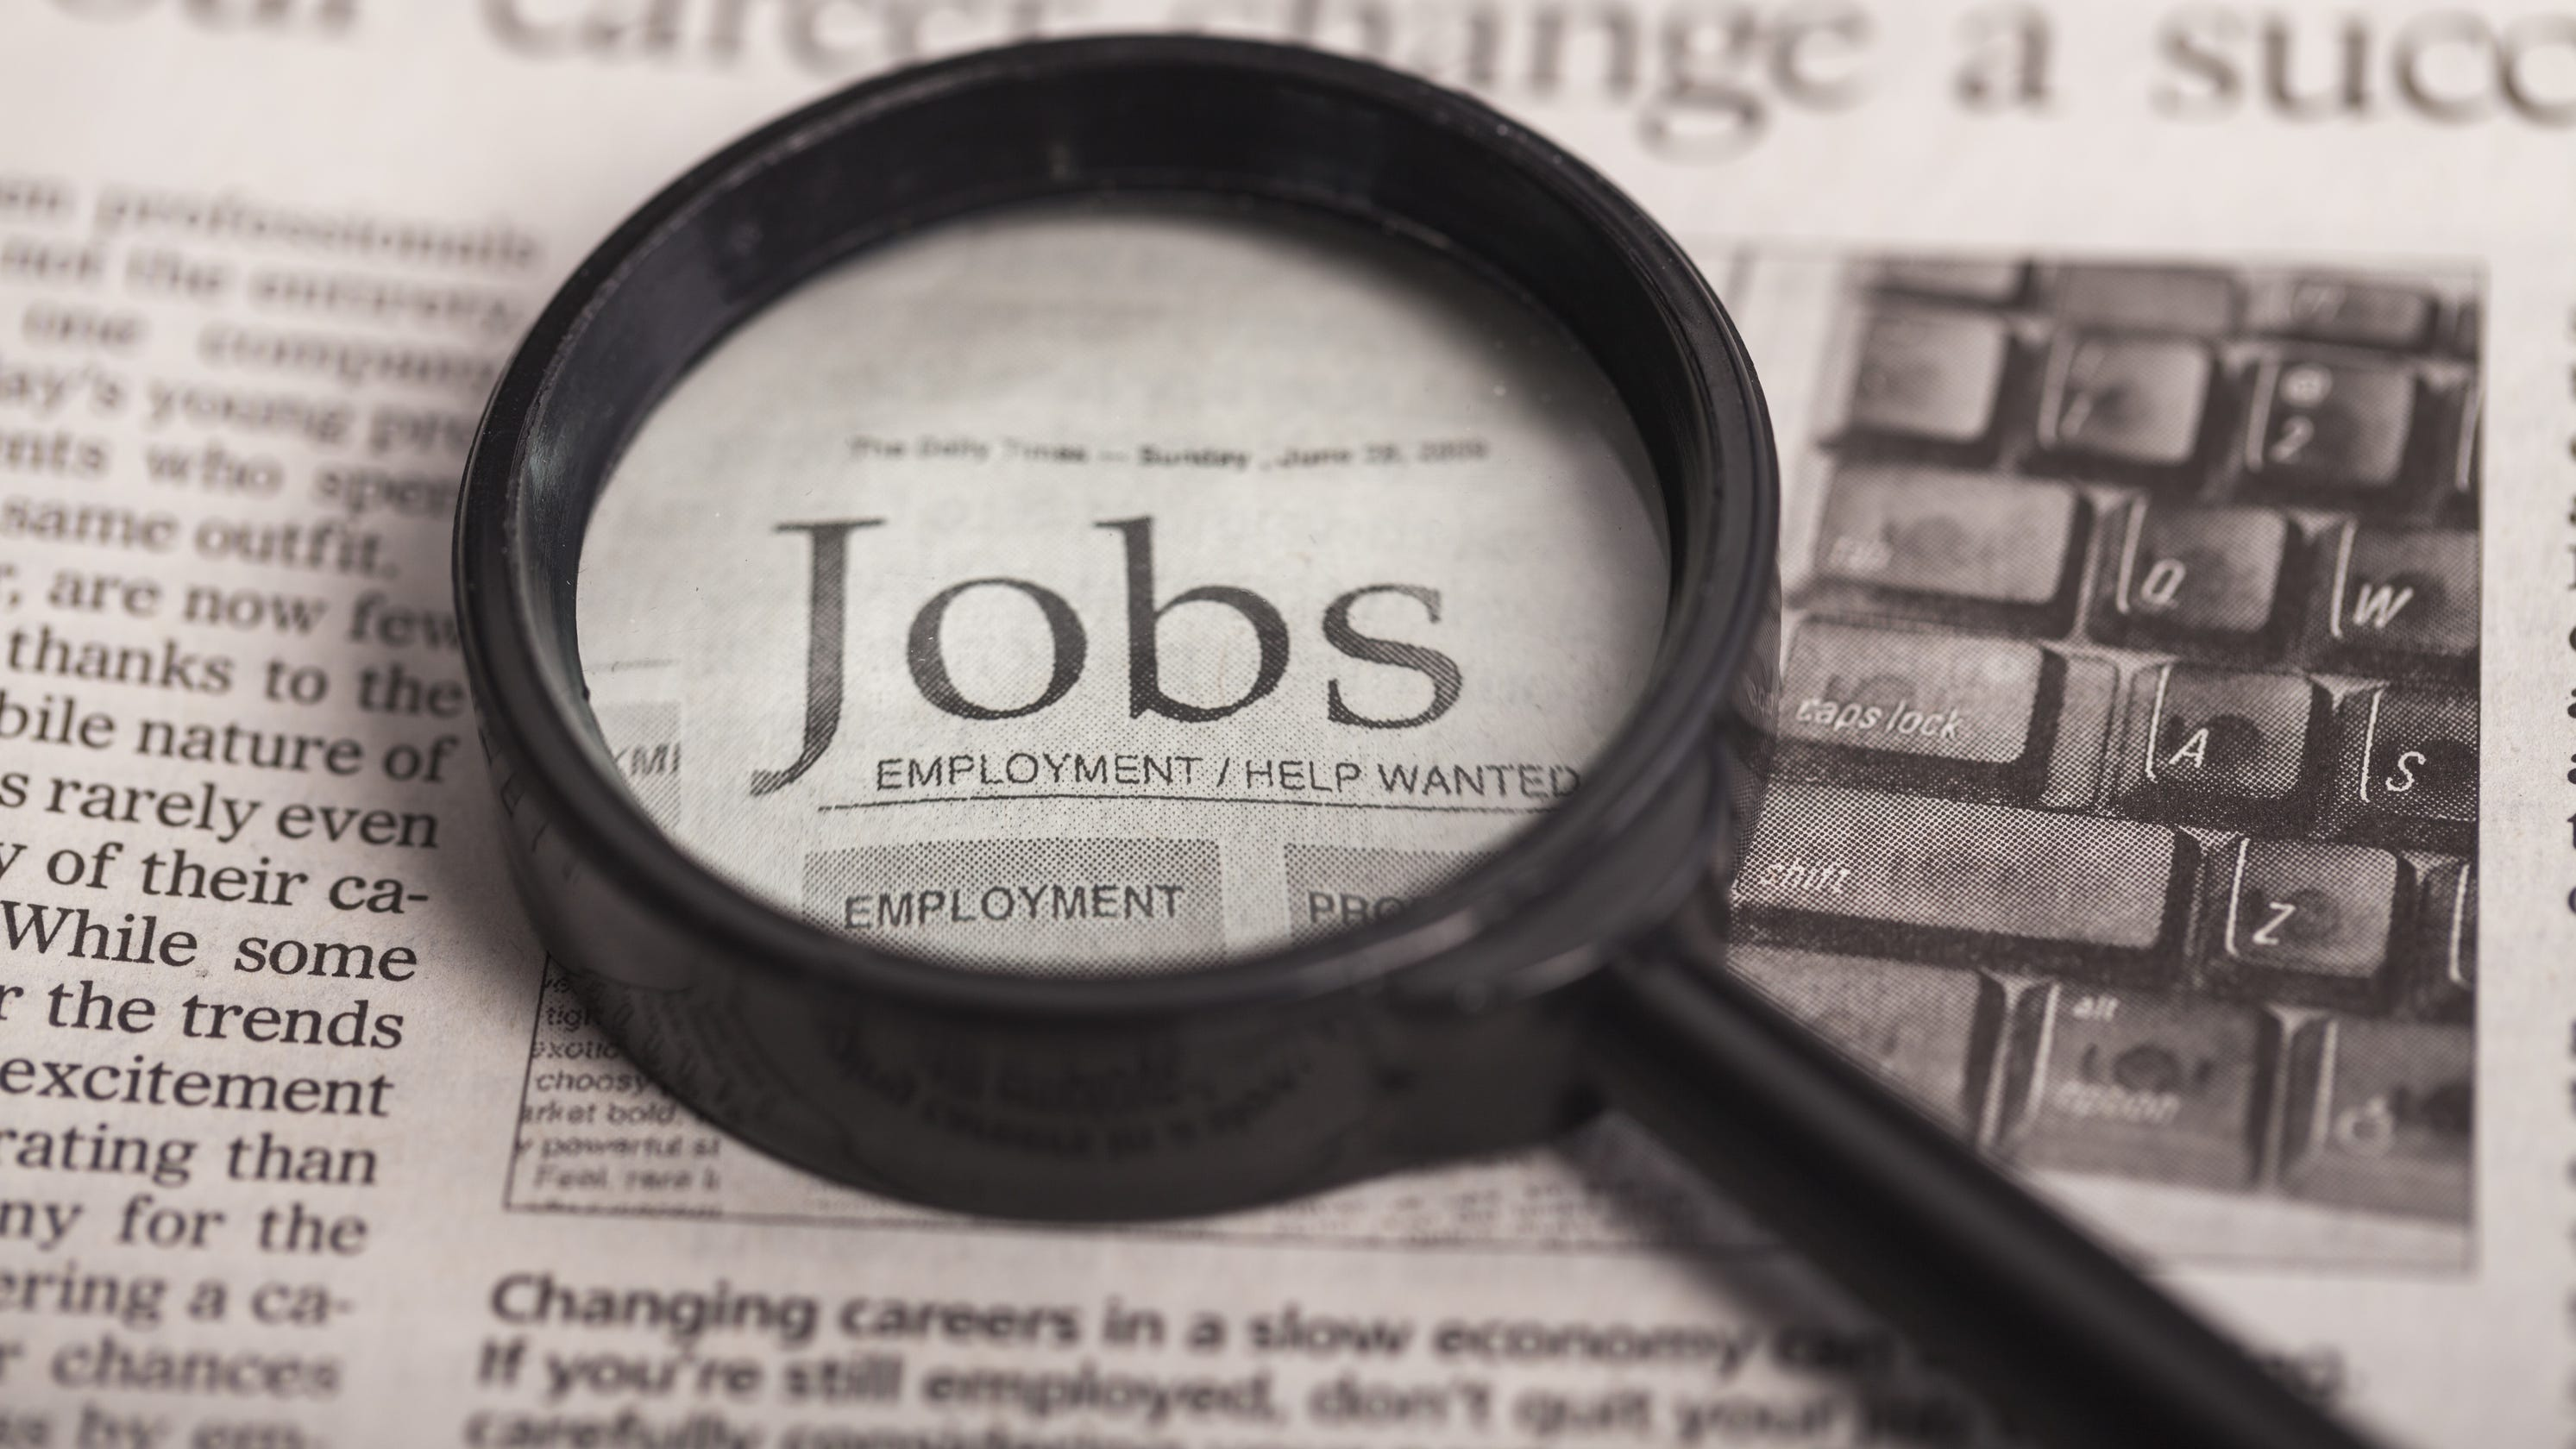 NJ jobs: Amazon joins, A&P drops top NJ employers this decade